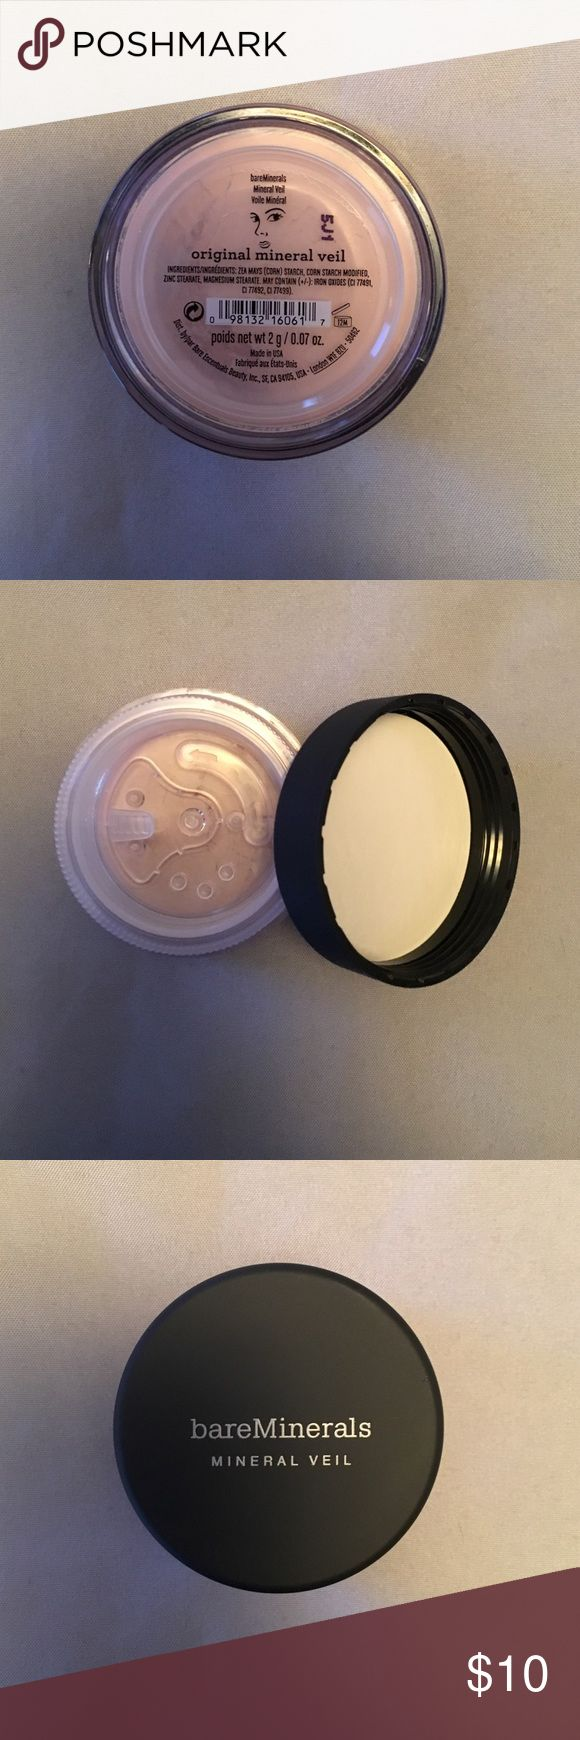 Bare minerals original mineral veil Bare minerals (mini) original mineral veil. I have 3 of these for sale but can be sold individually. Brand new! bareMinerals Makeup Face Powder